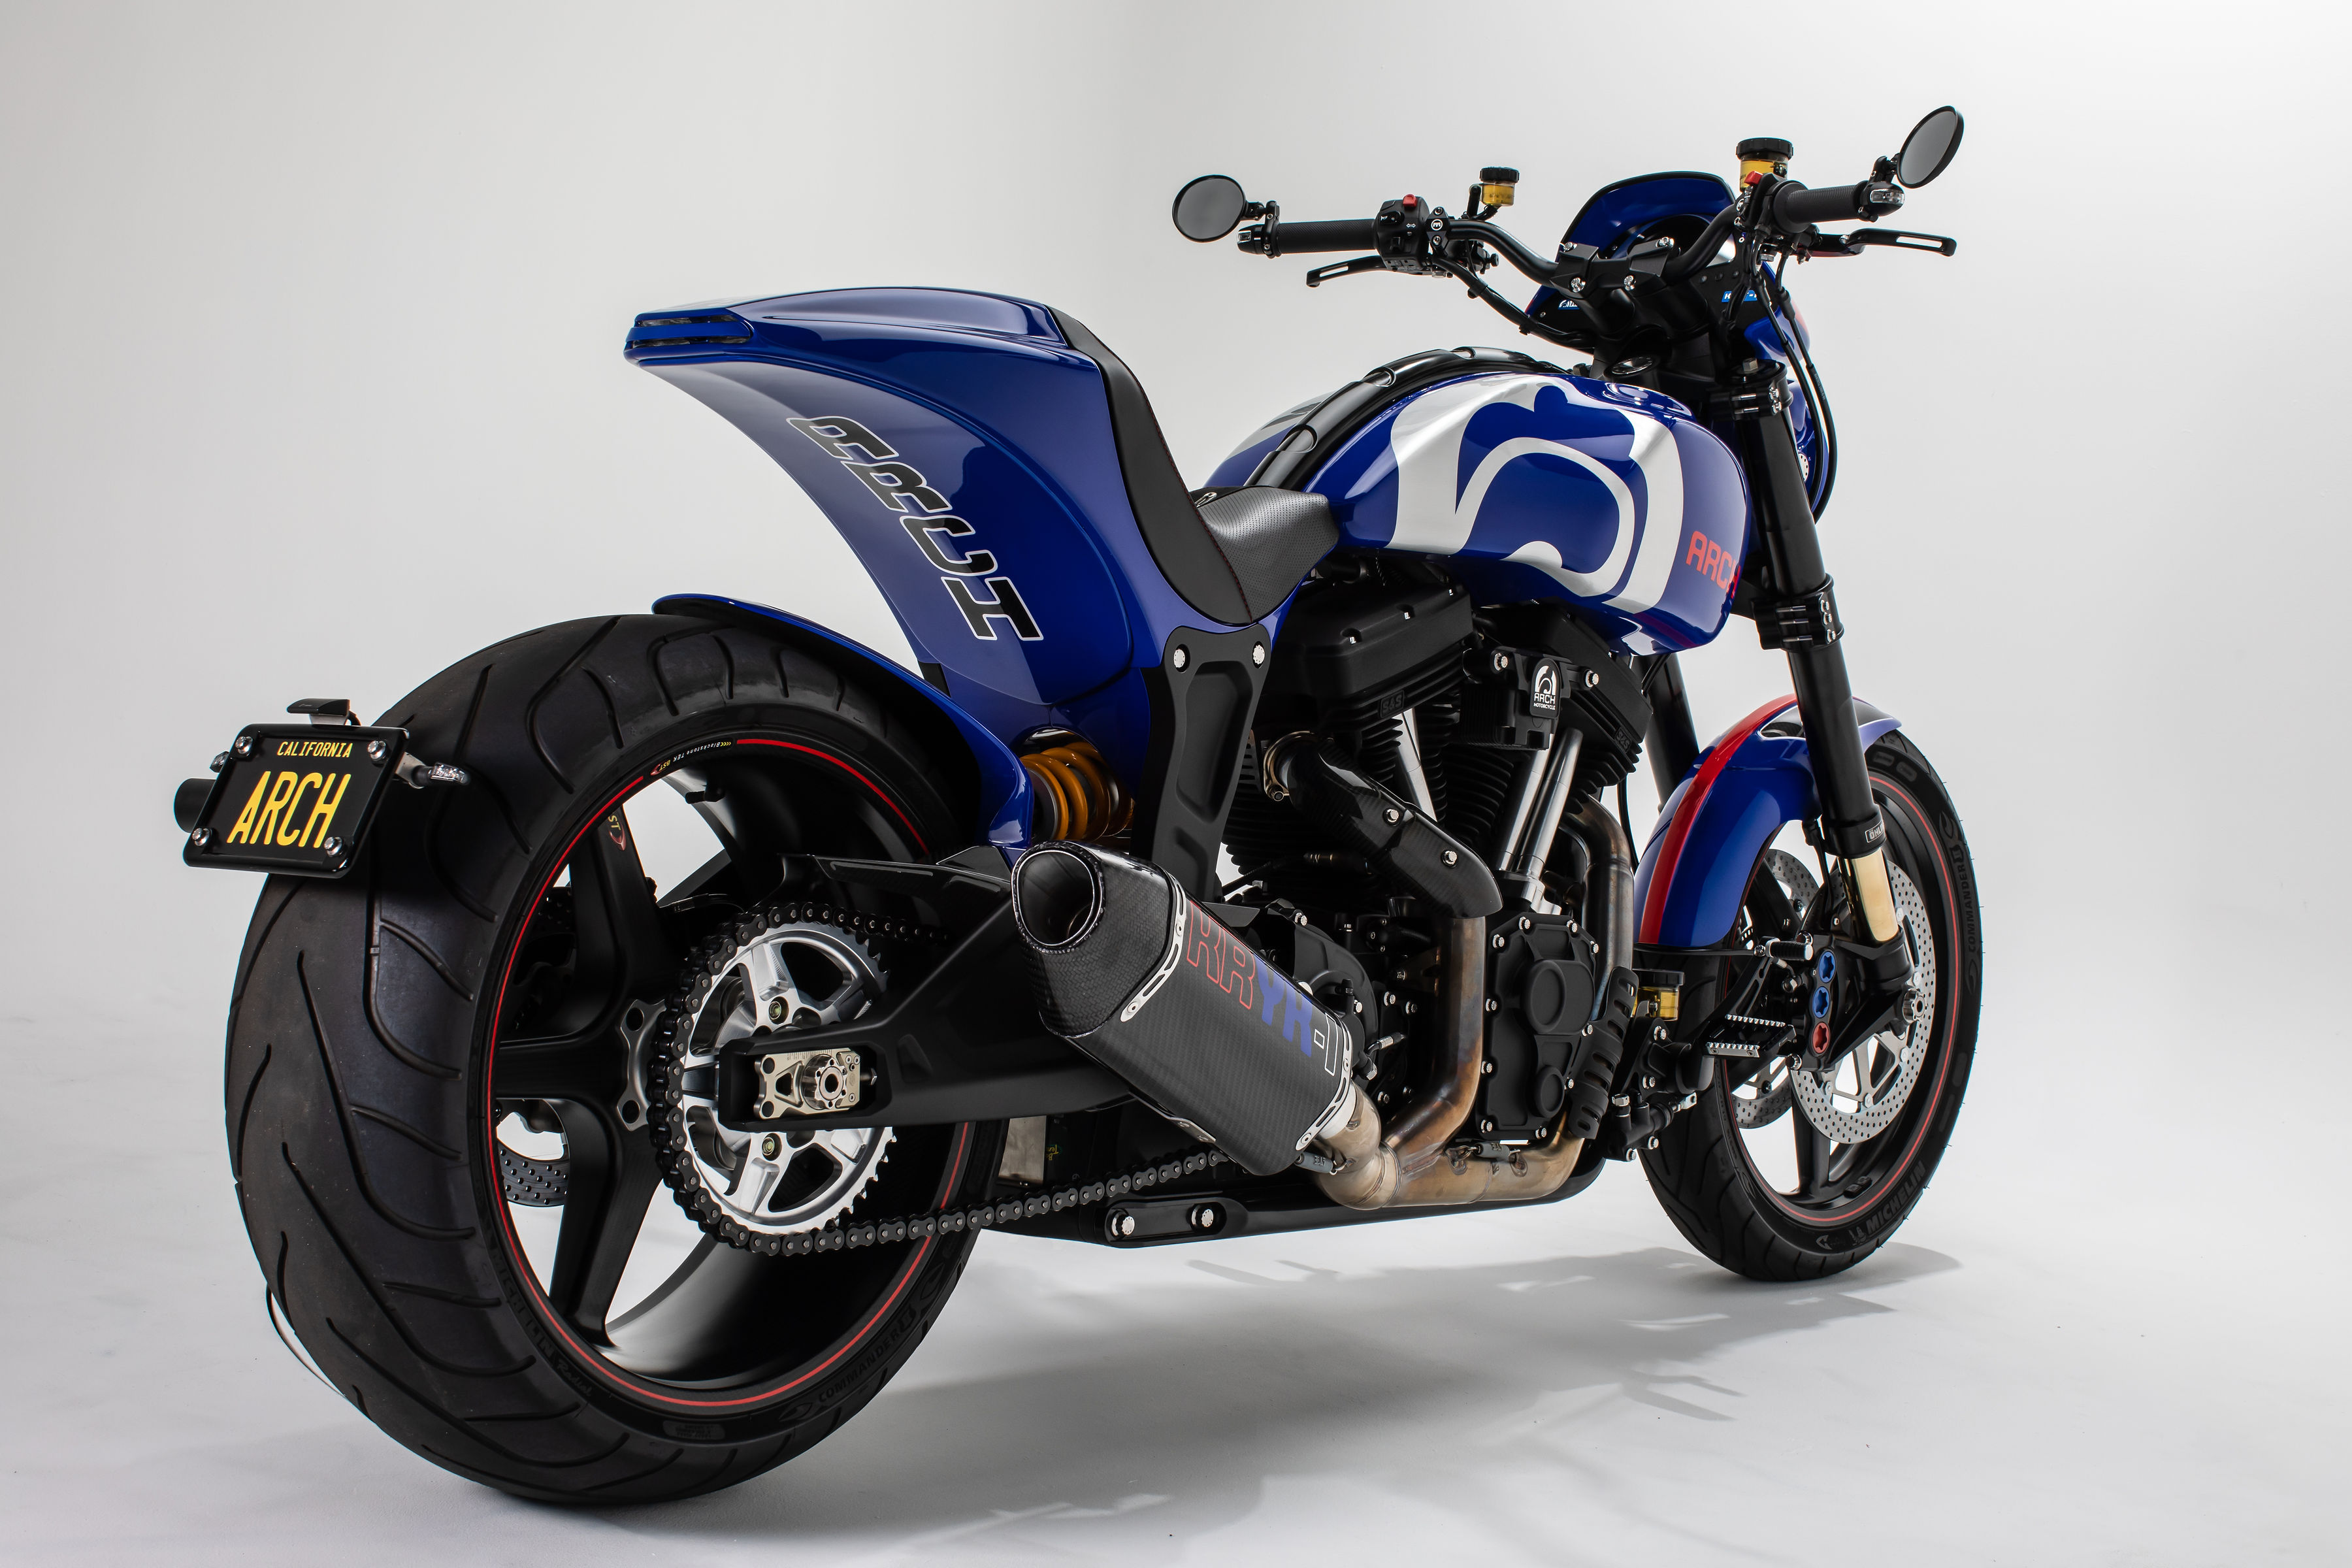 ARCH Motorcycle KRGT 1 Motorcyclecom News